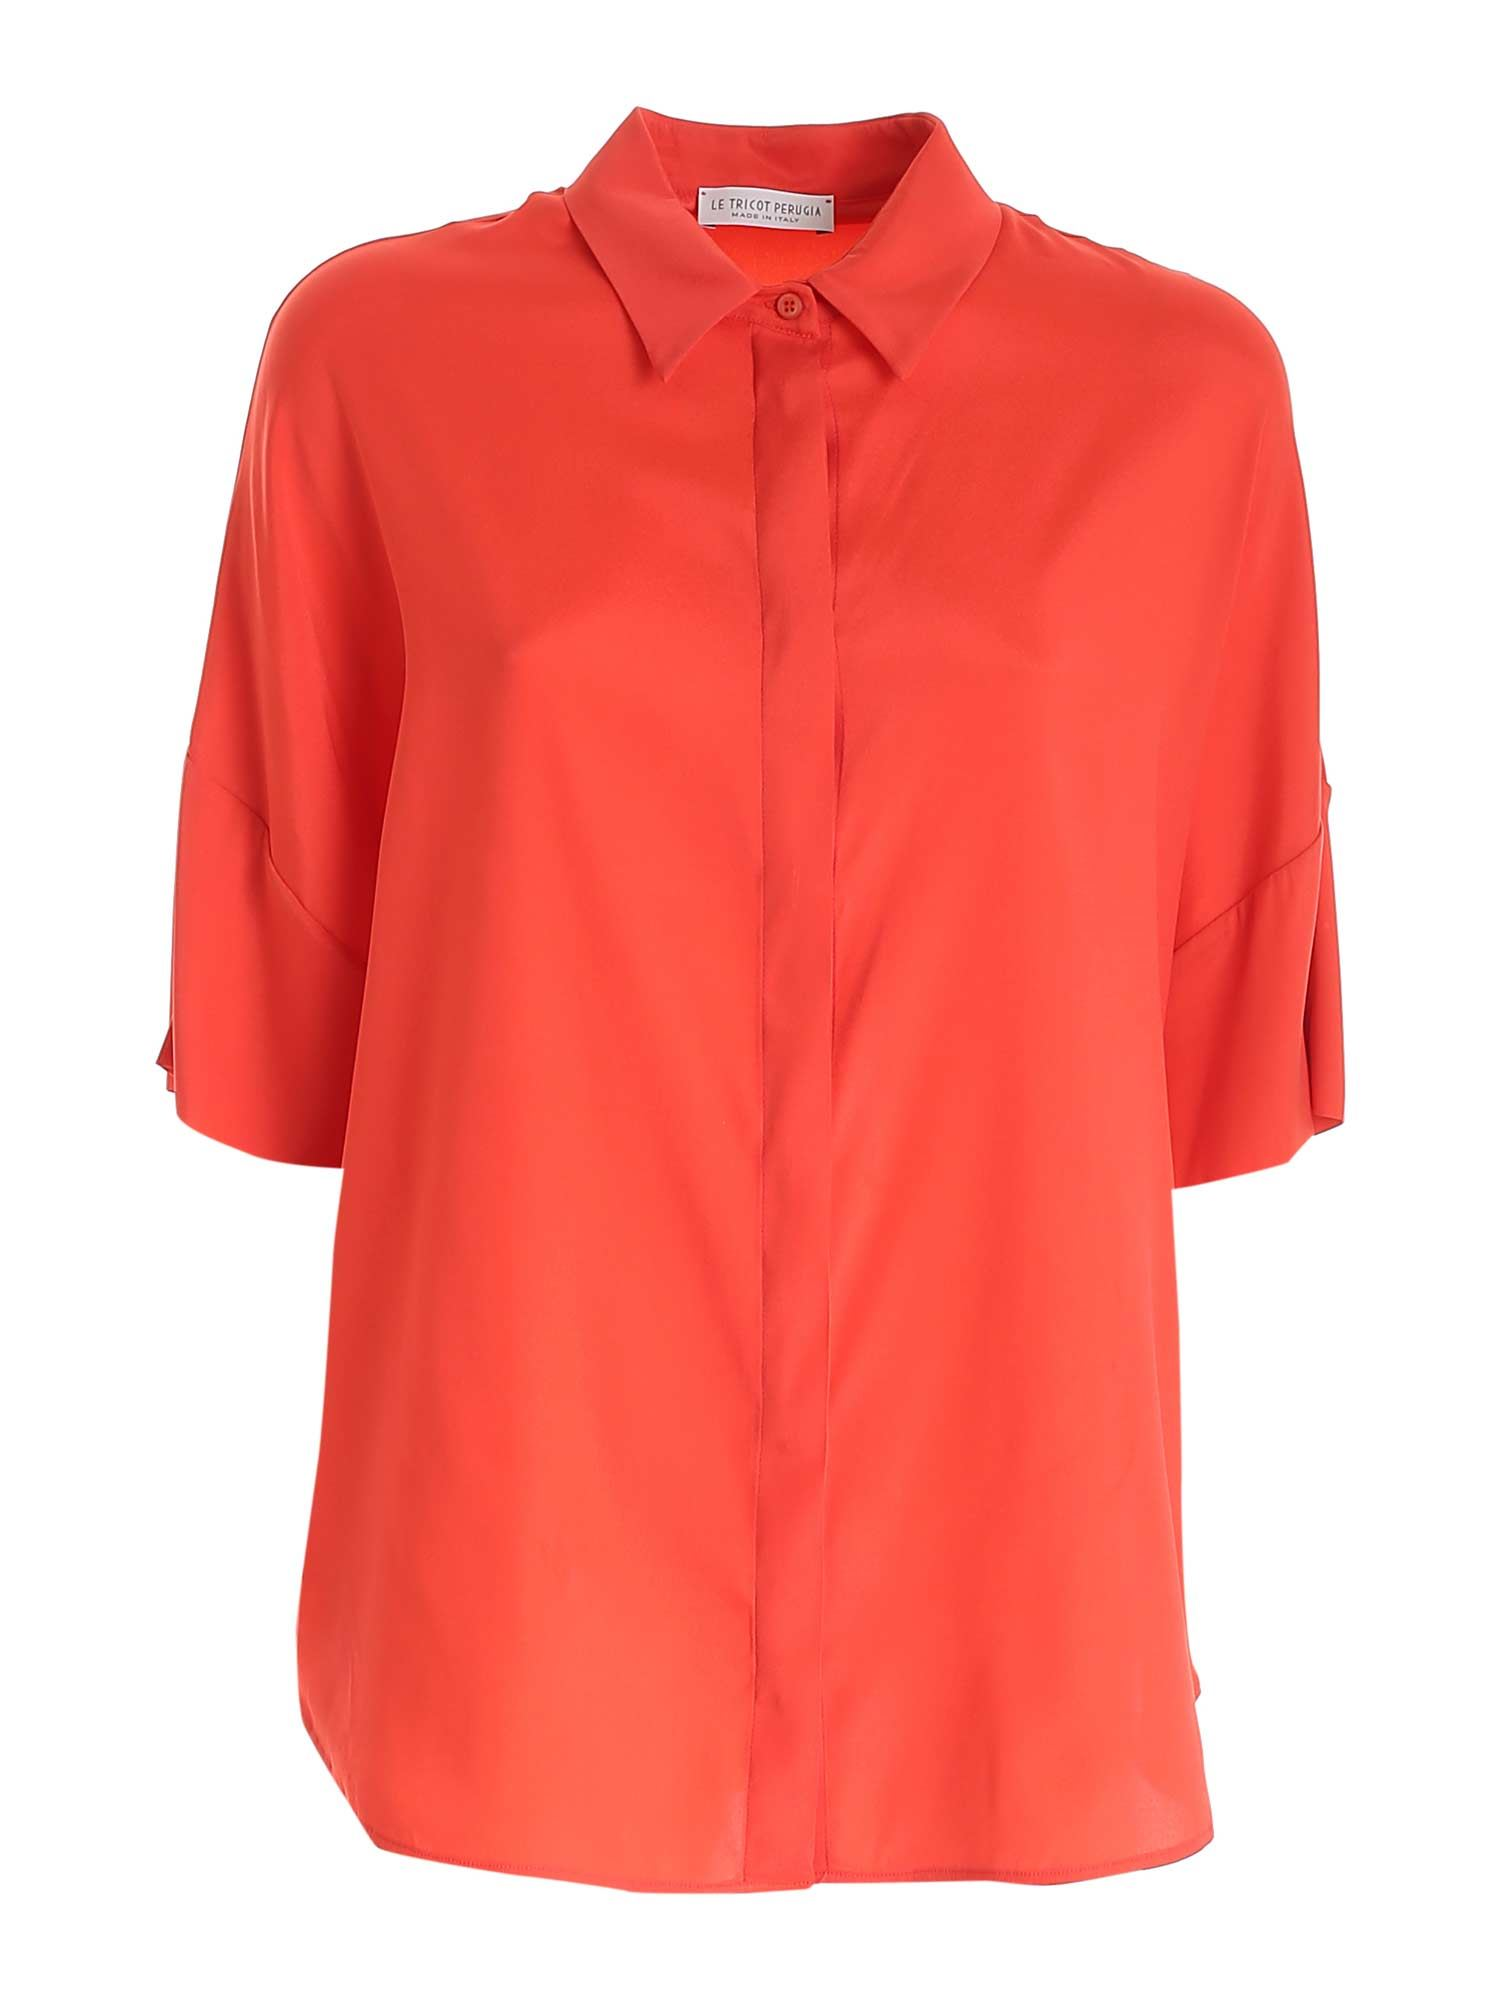 Le Tricot Perugia CORAL RED SHIRT